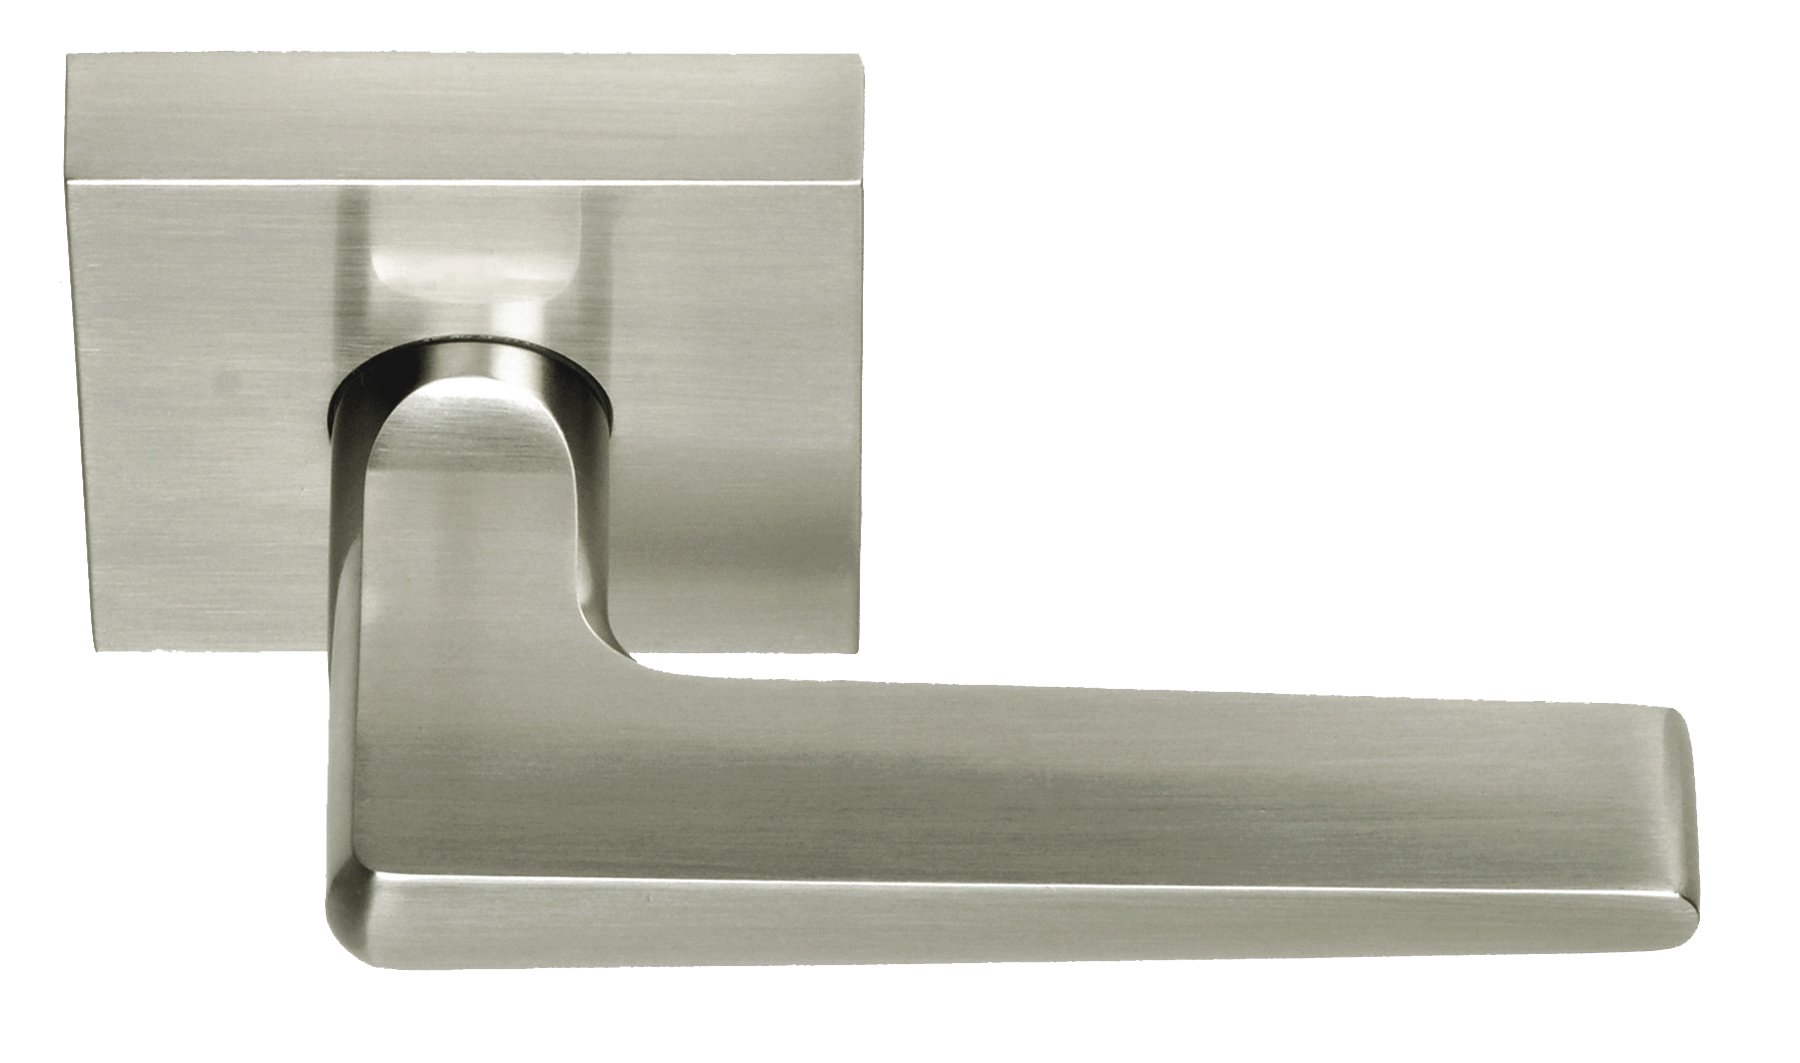 Better Home Products Tiburon Reversible Passage Lever, Satin Nickel